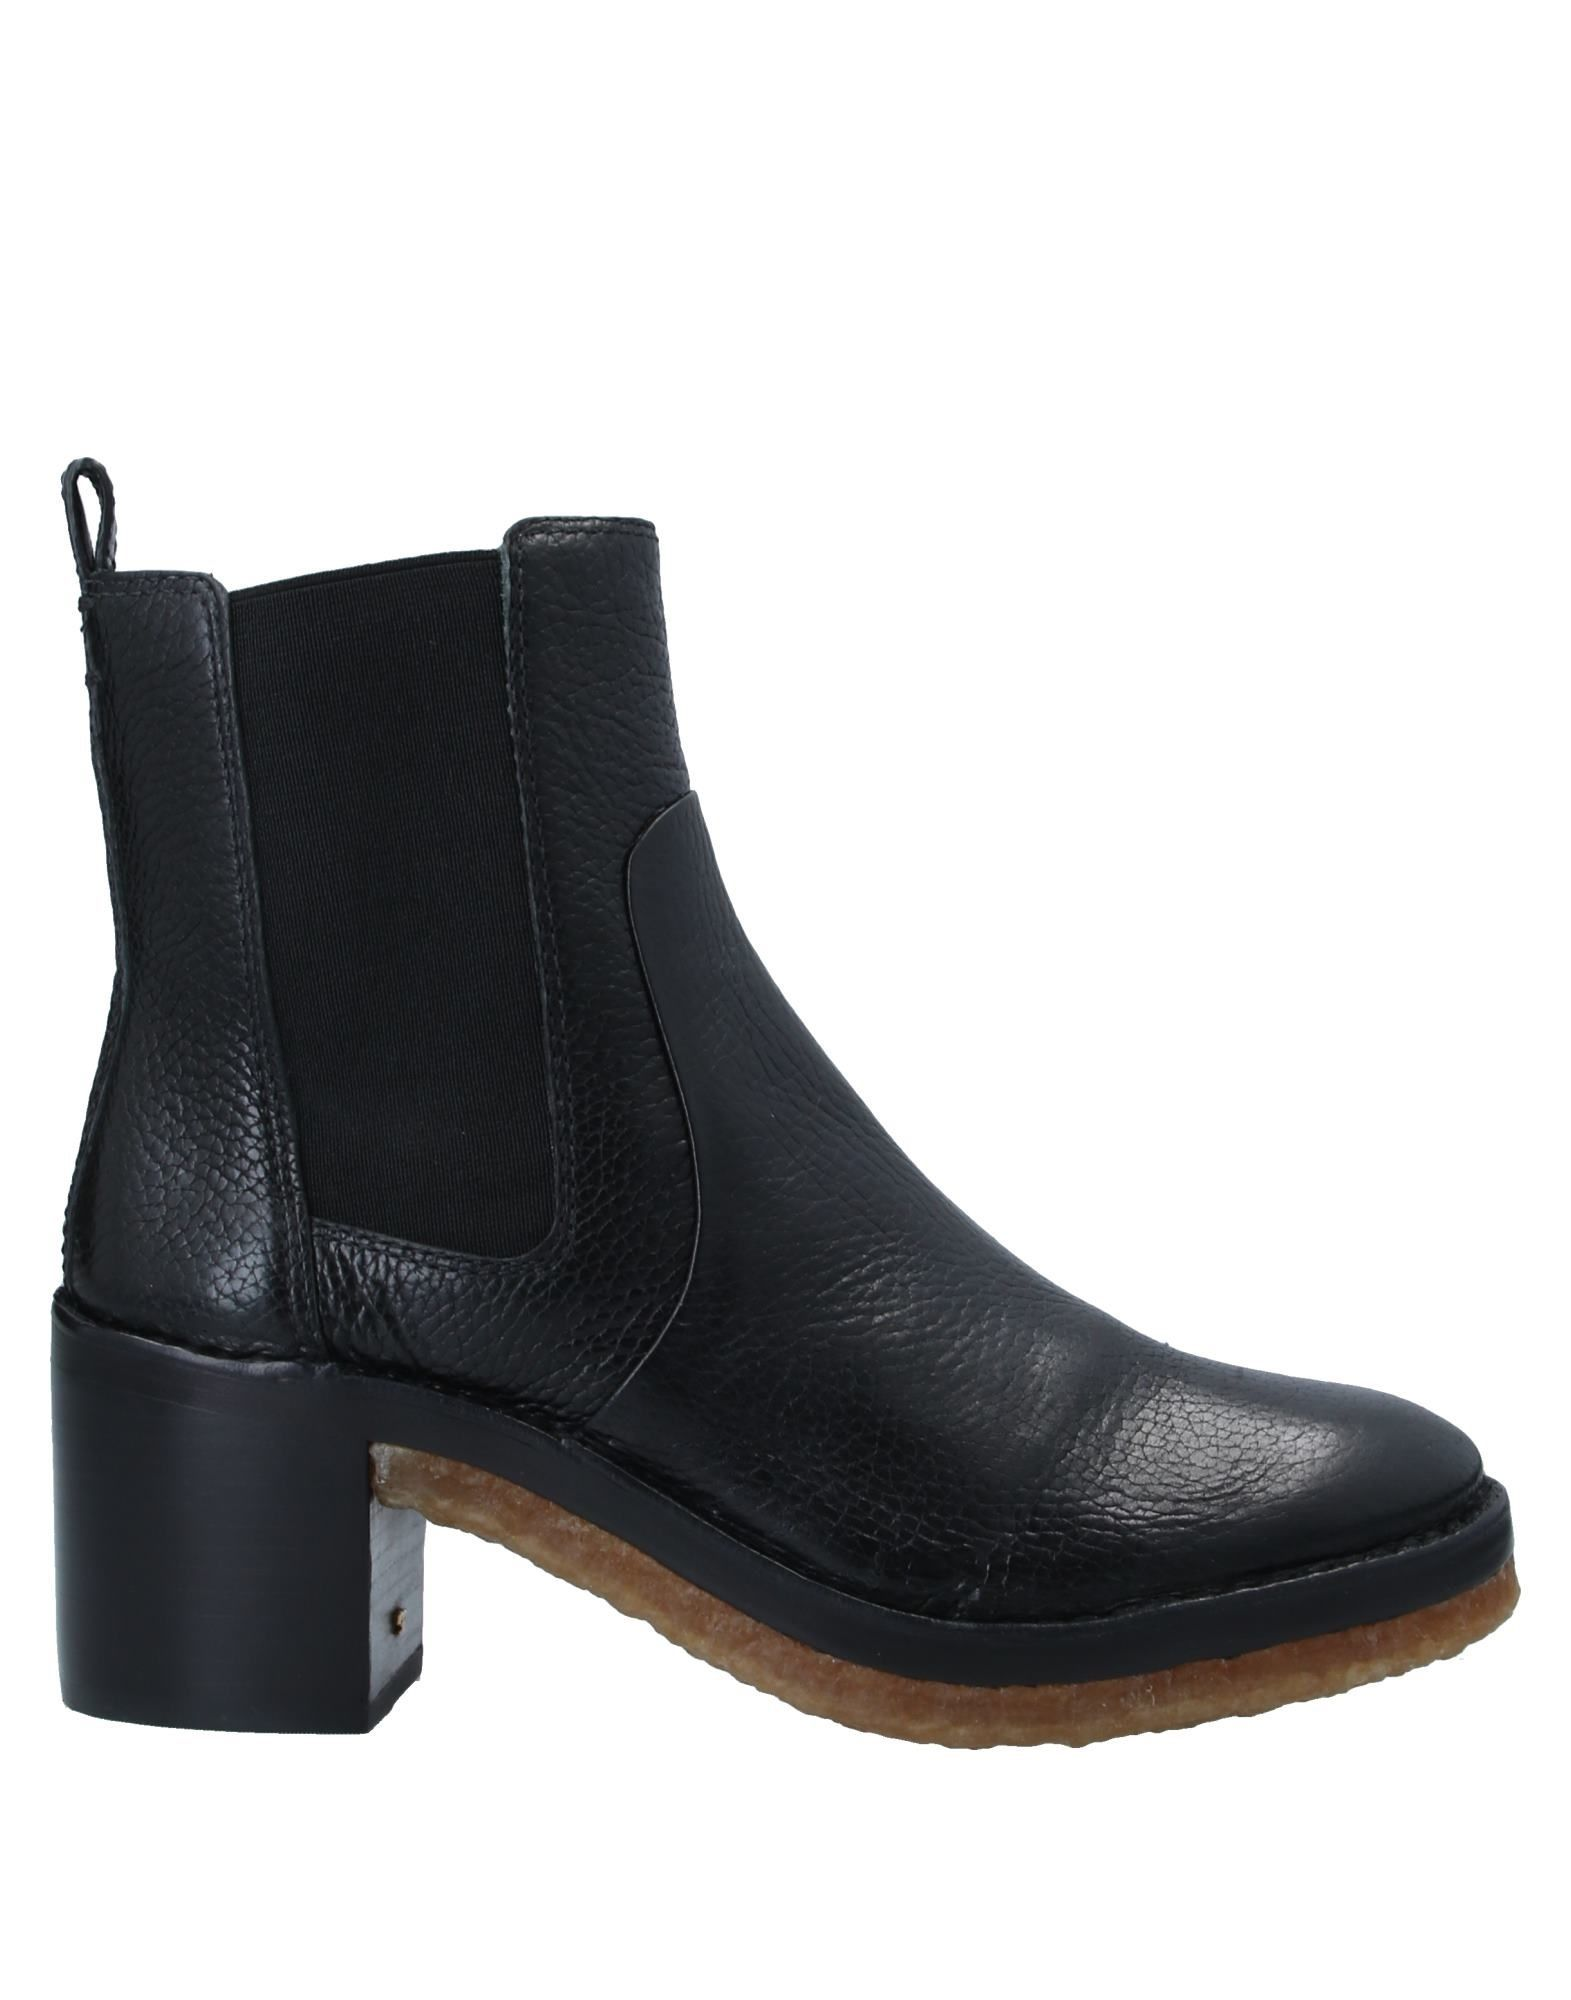 Tory Burch Black Textured Leather Ankle Boots